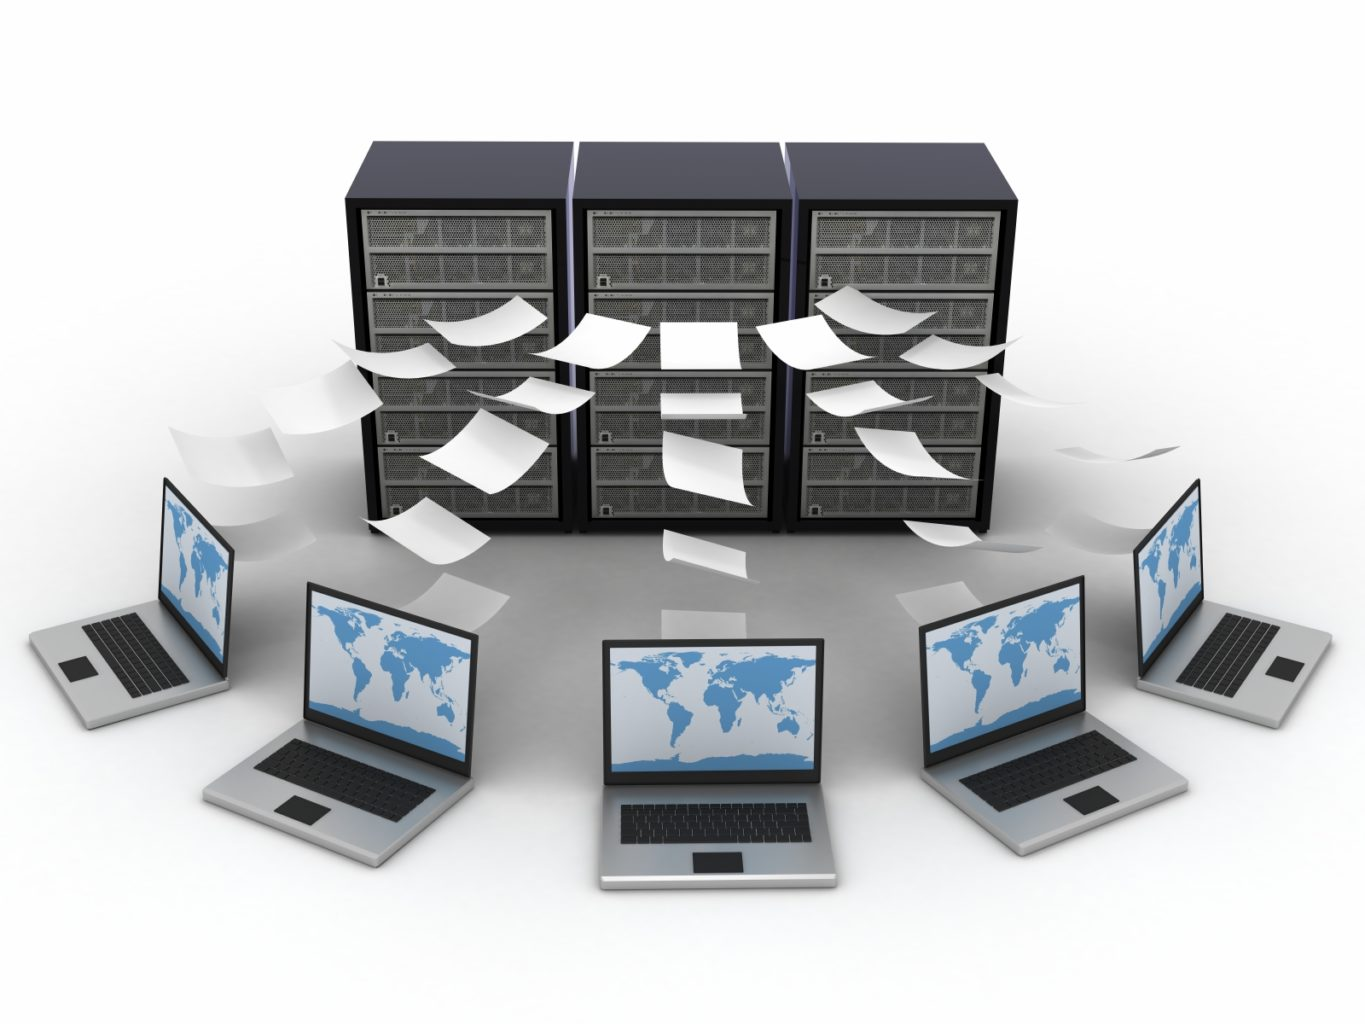 Data Recovery Market Size, Trends Analysis